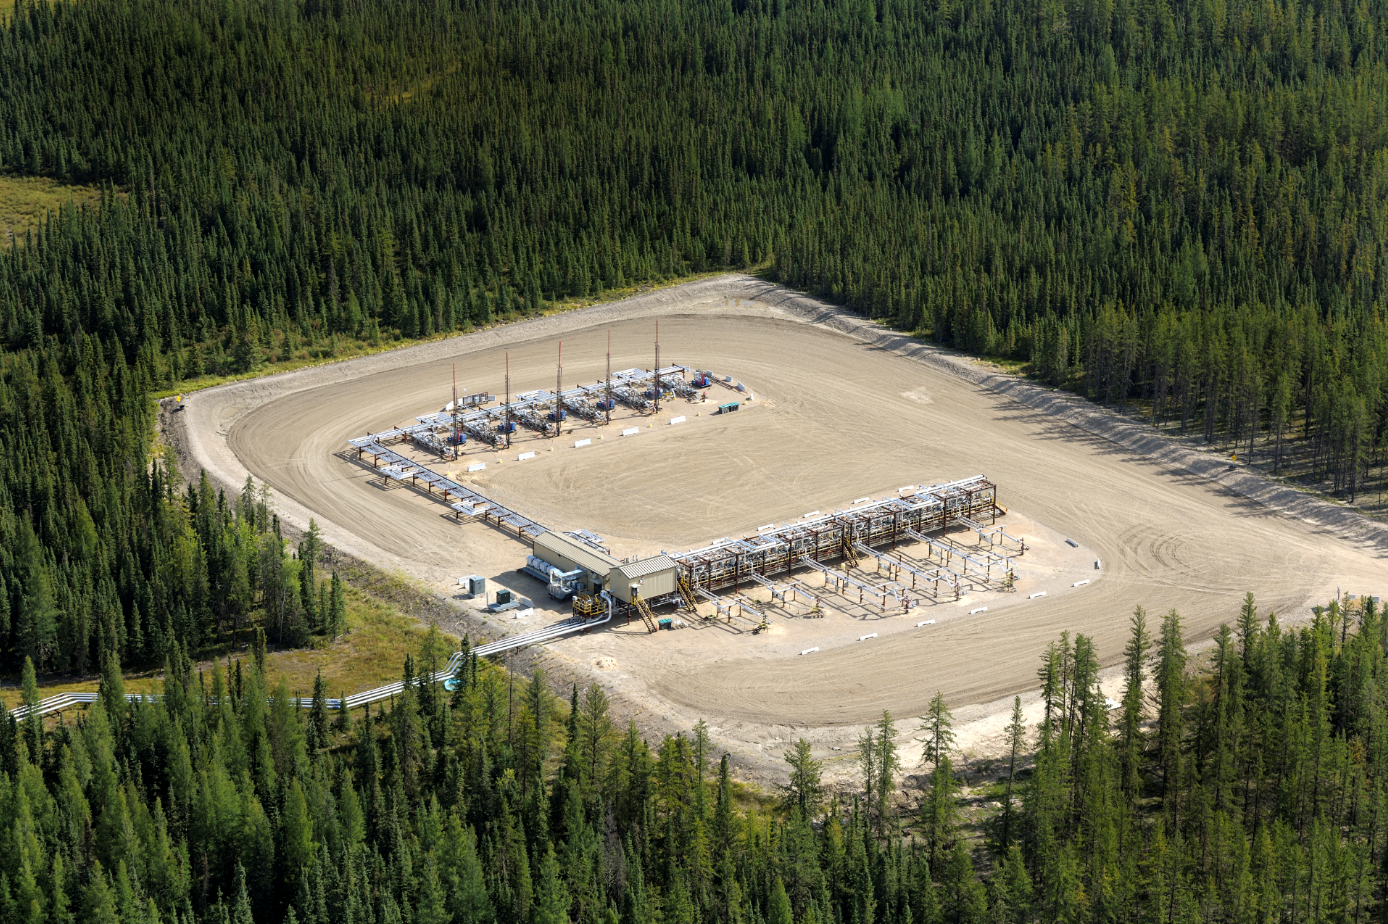 Foster Creek Cenovus Oil Sands Well Pad SAGD